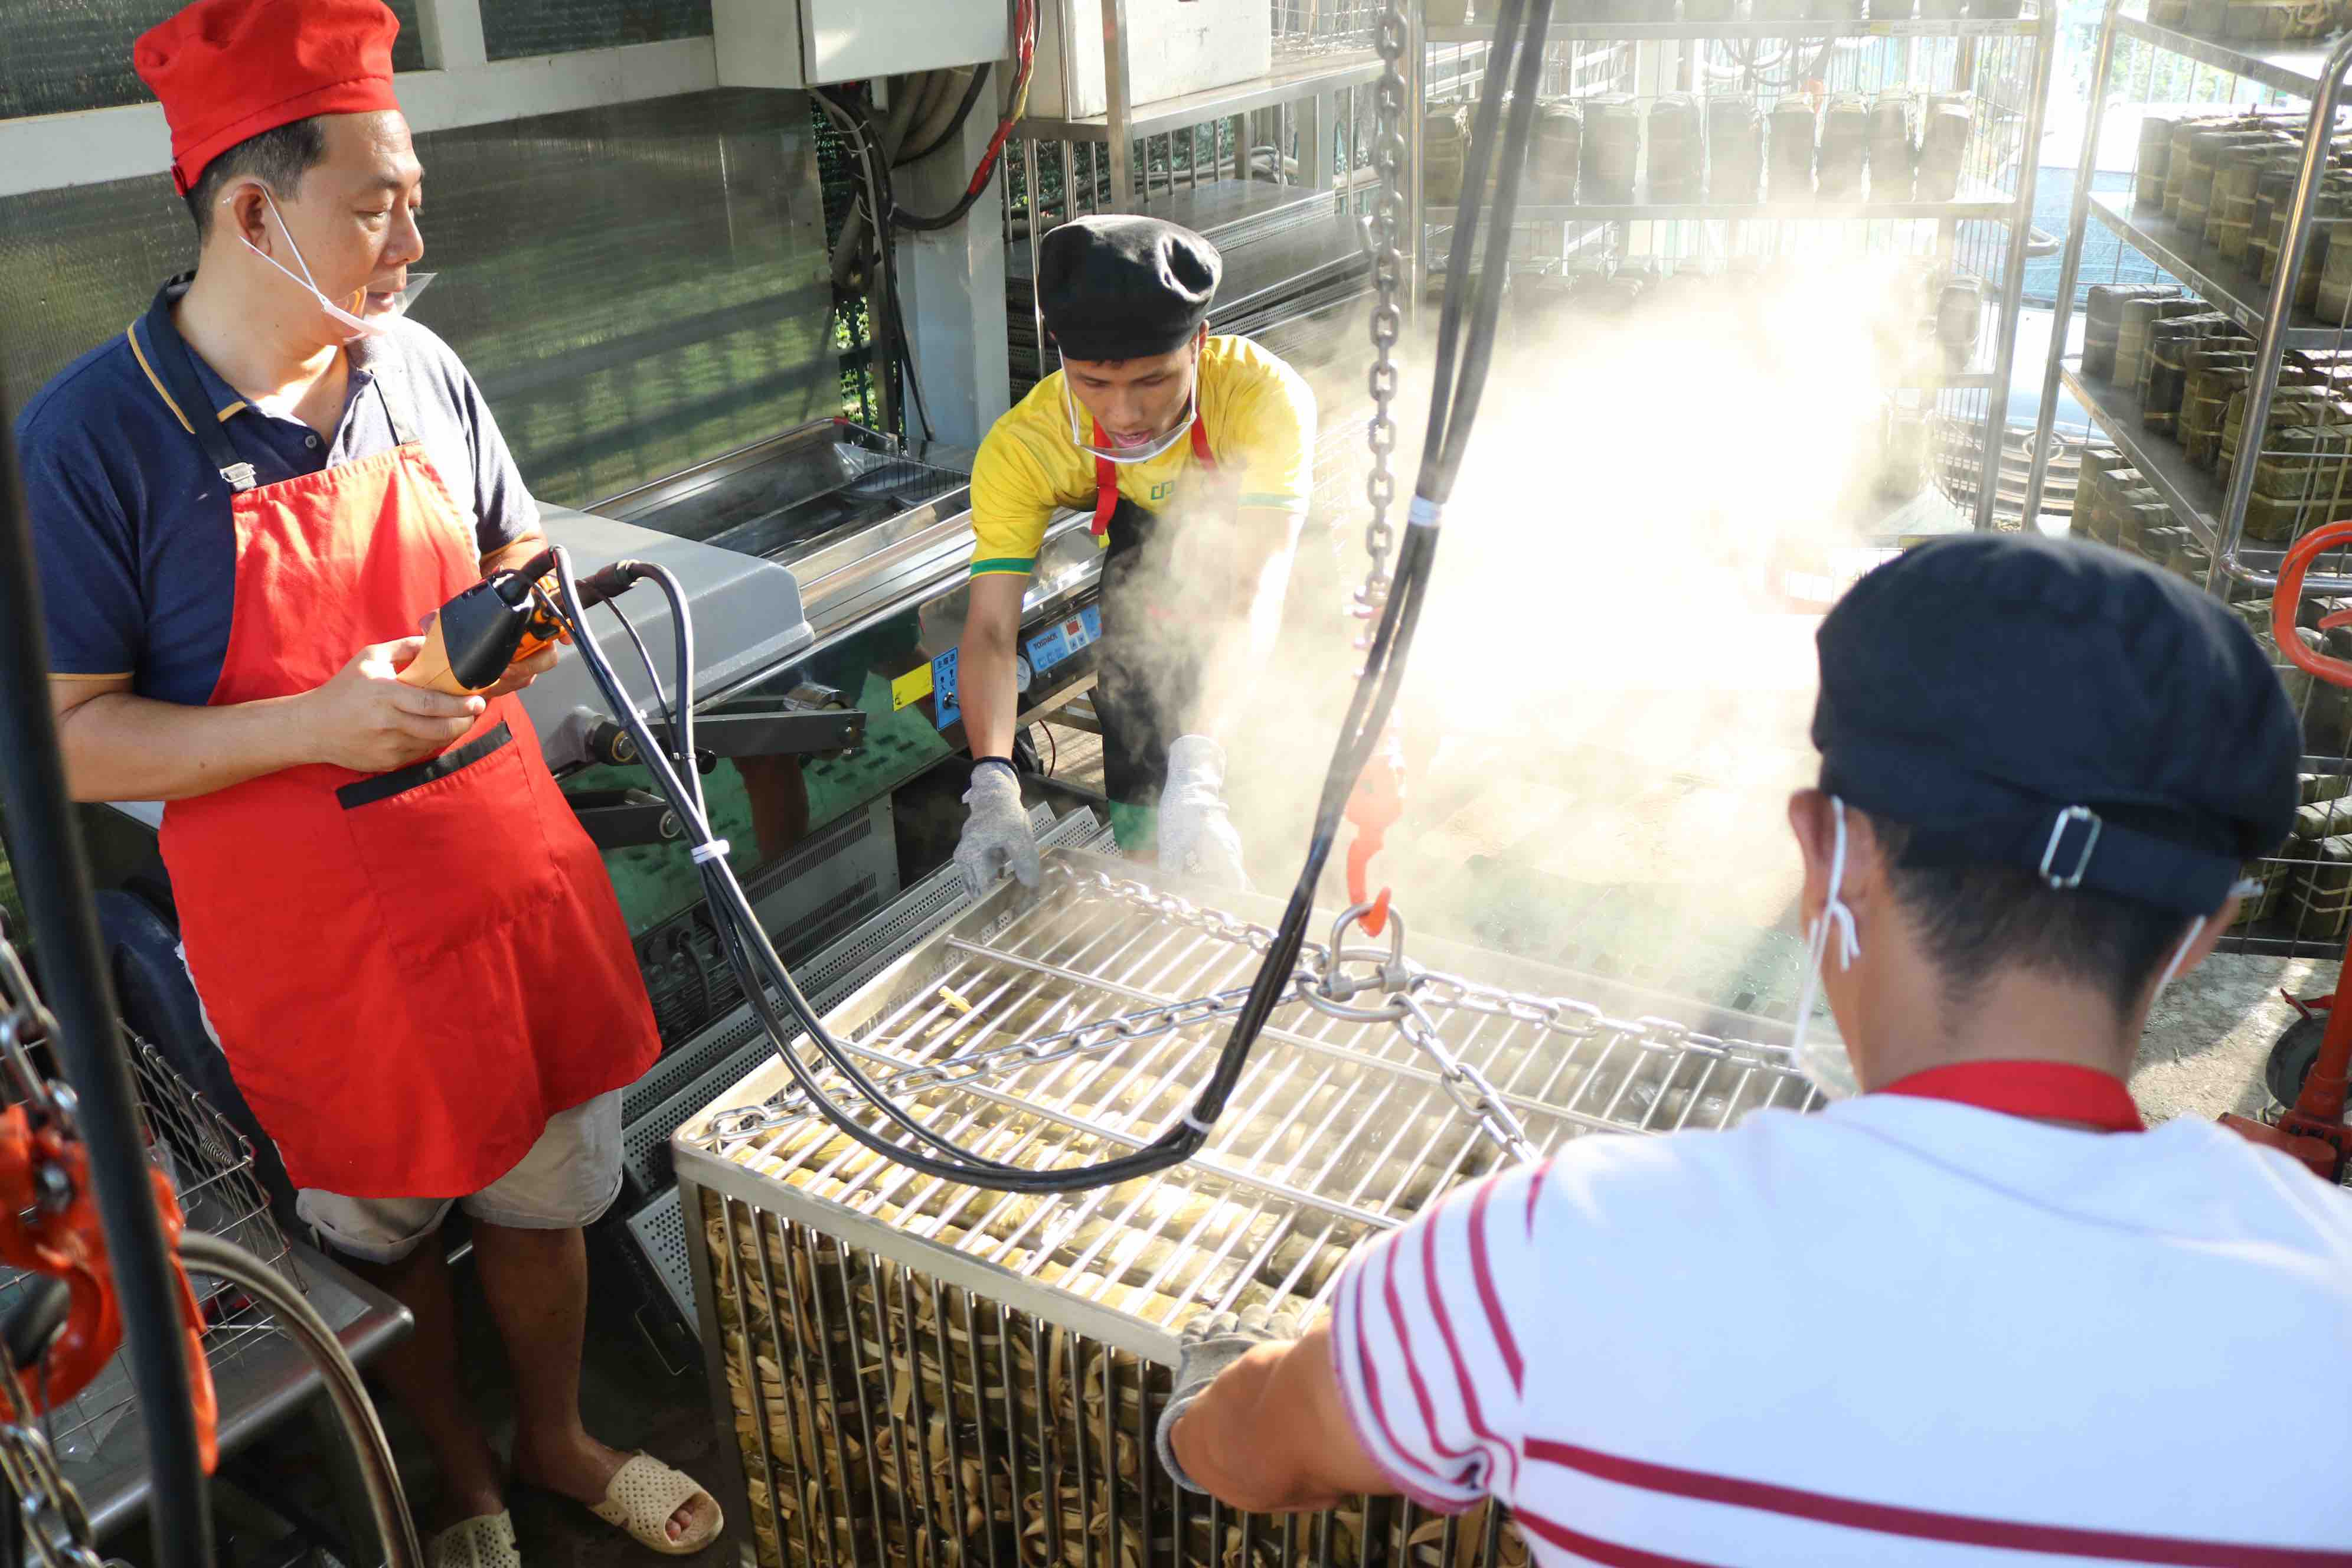 Pham Khac Tuong waters the new batch to reduce the temperature at his facility in Thu Duc City. Photo: Hoang An / Tuoi Tre